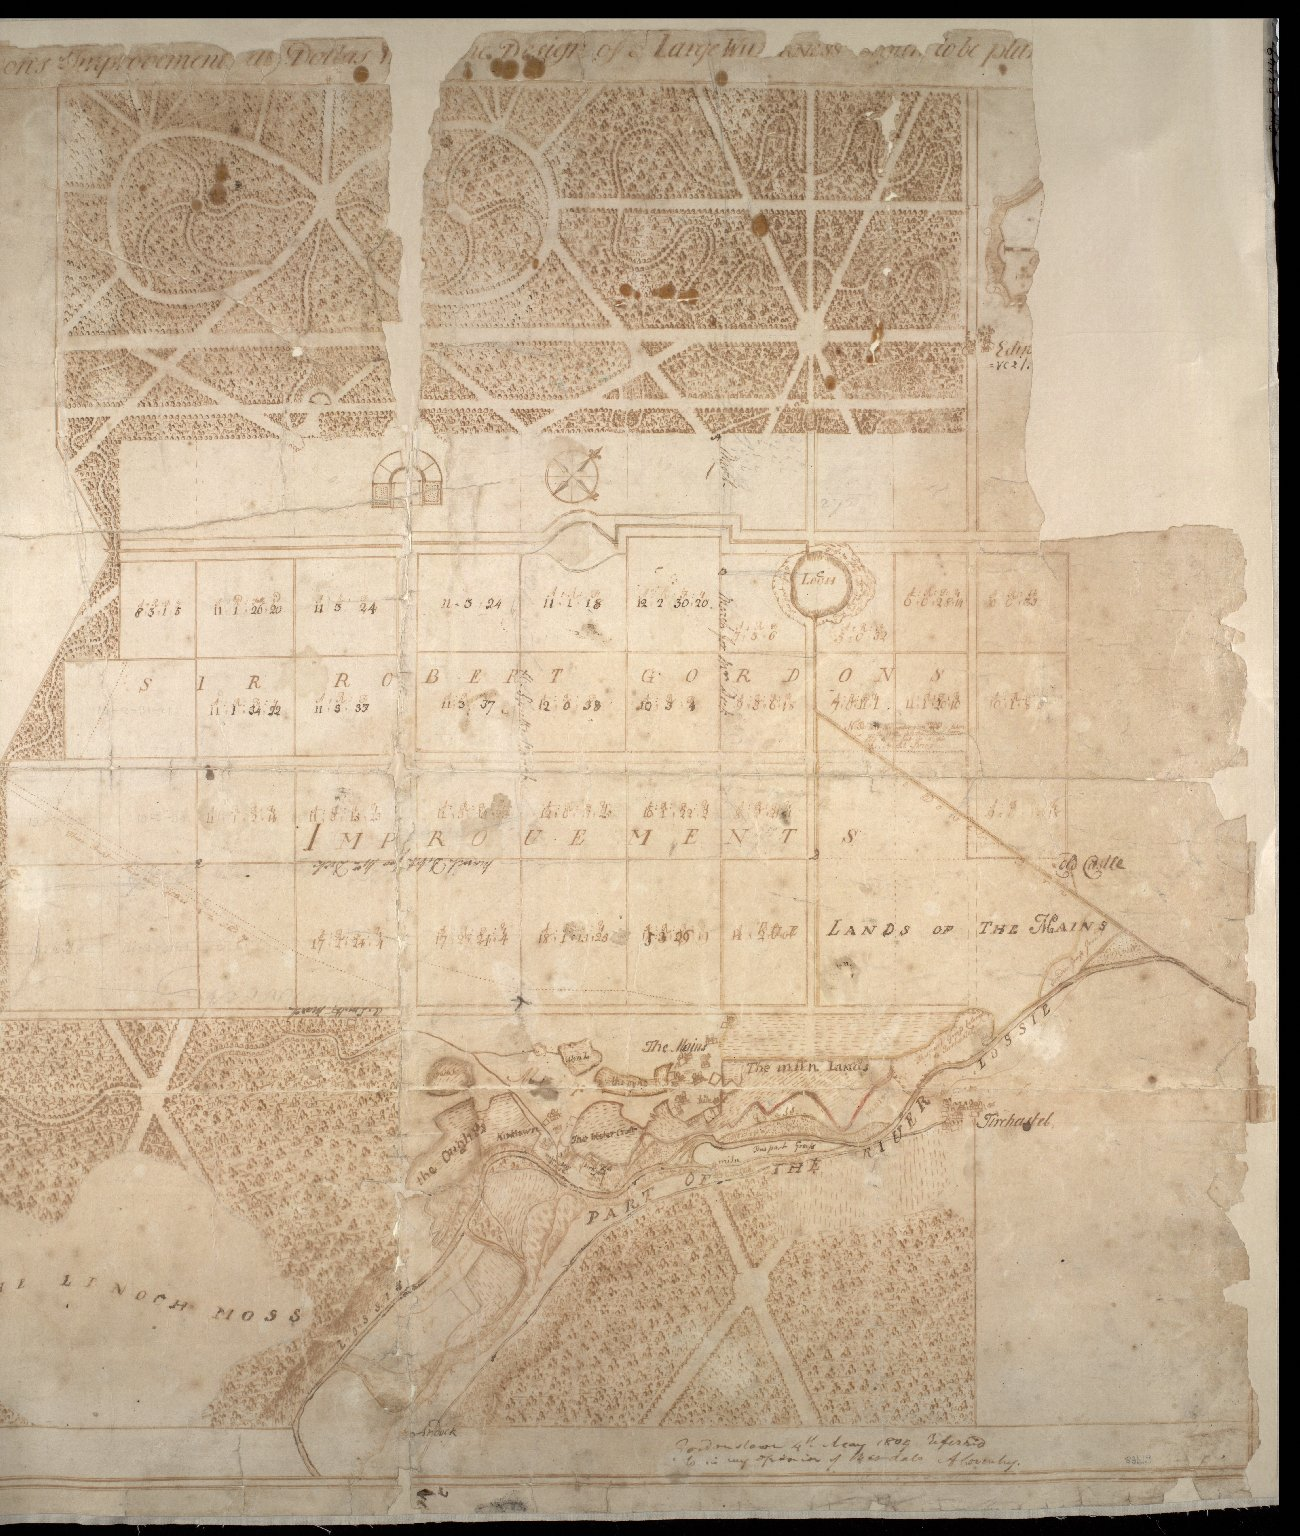 Plan of Sr Robert Gordons Improvements at Dallas [with] the Design of a Large Wilderness to be pla[nted] [1 of 2]